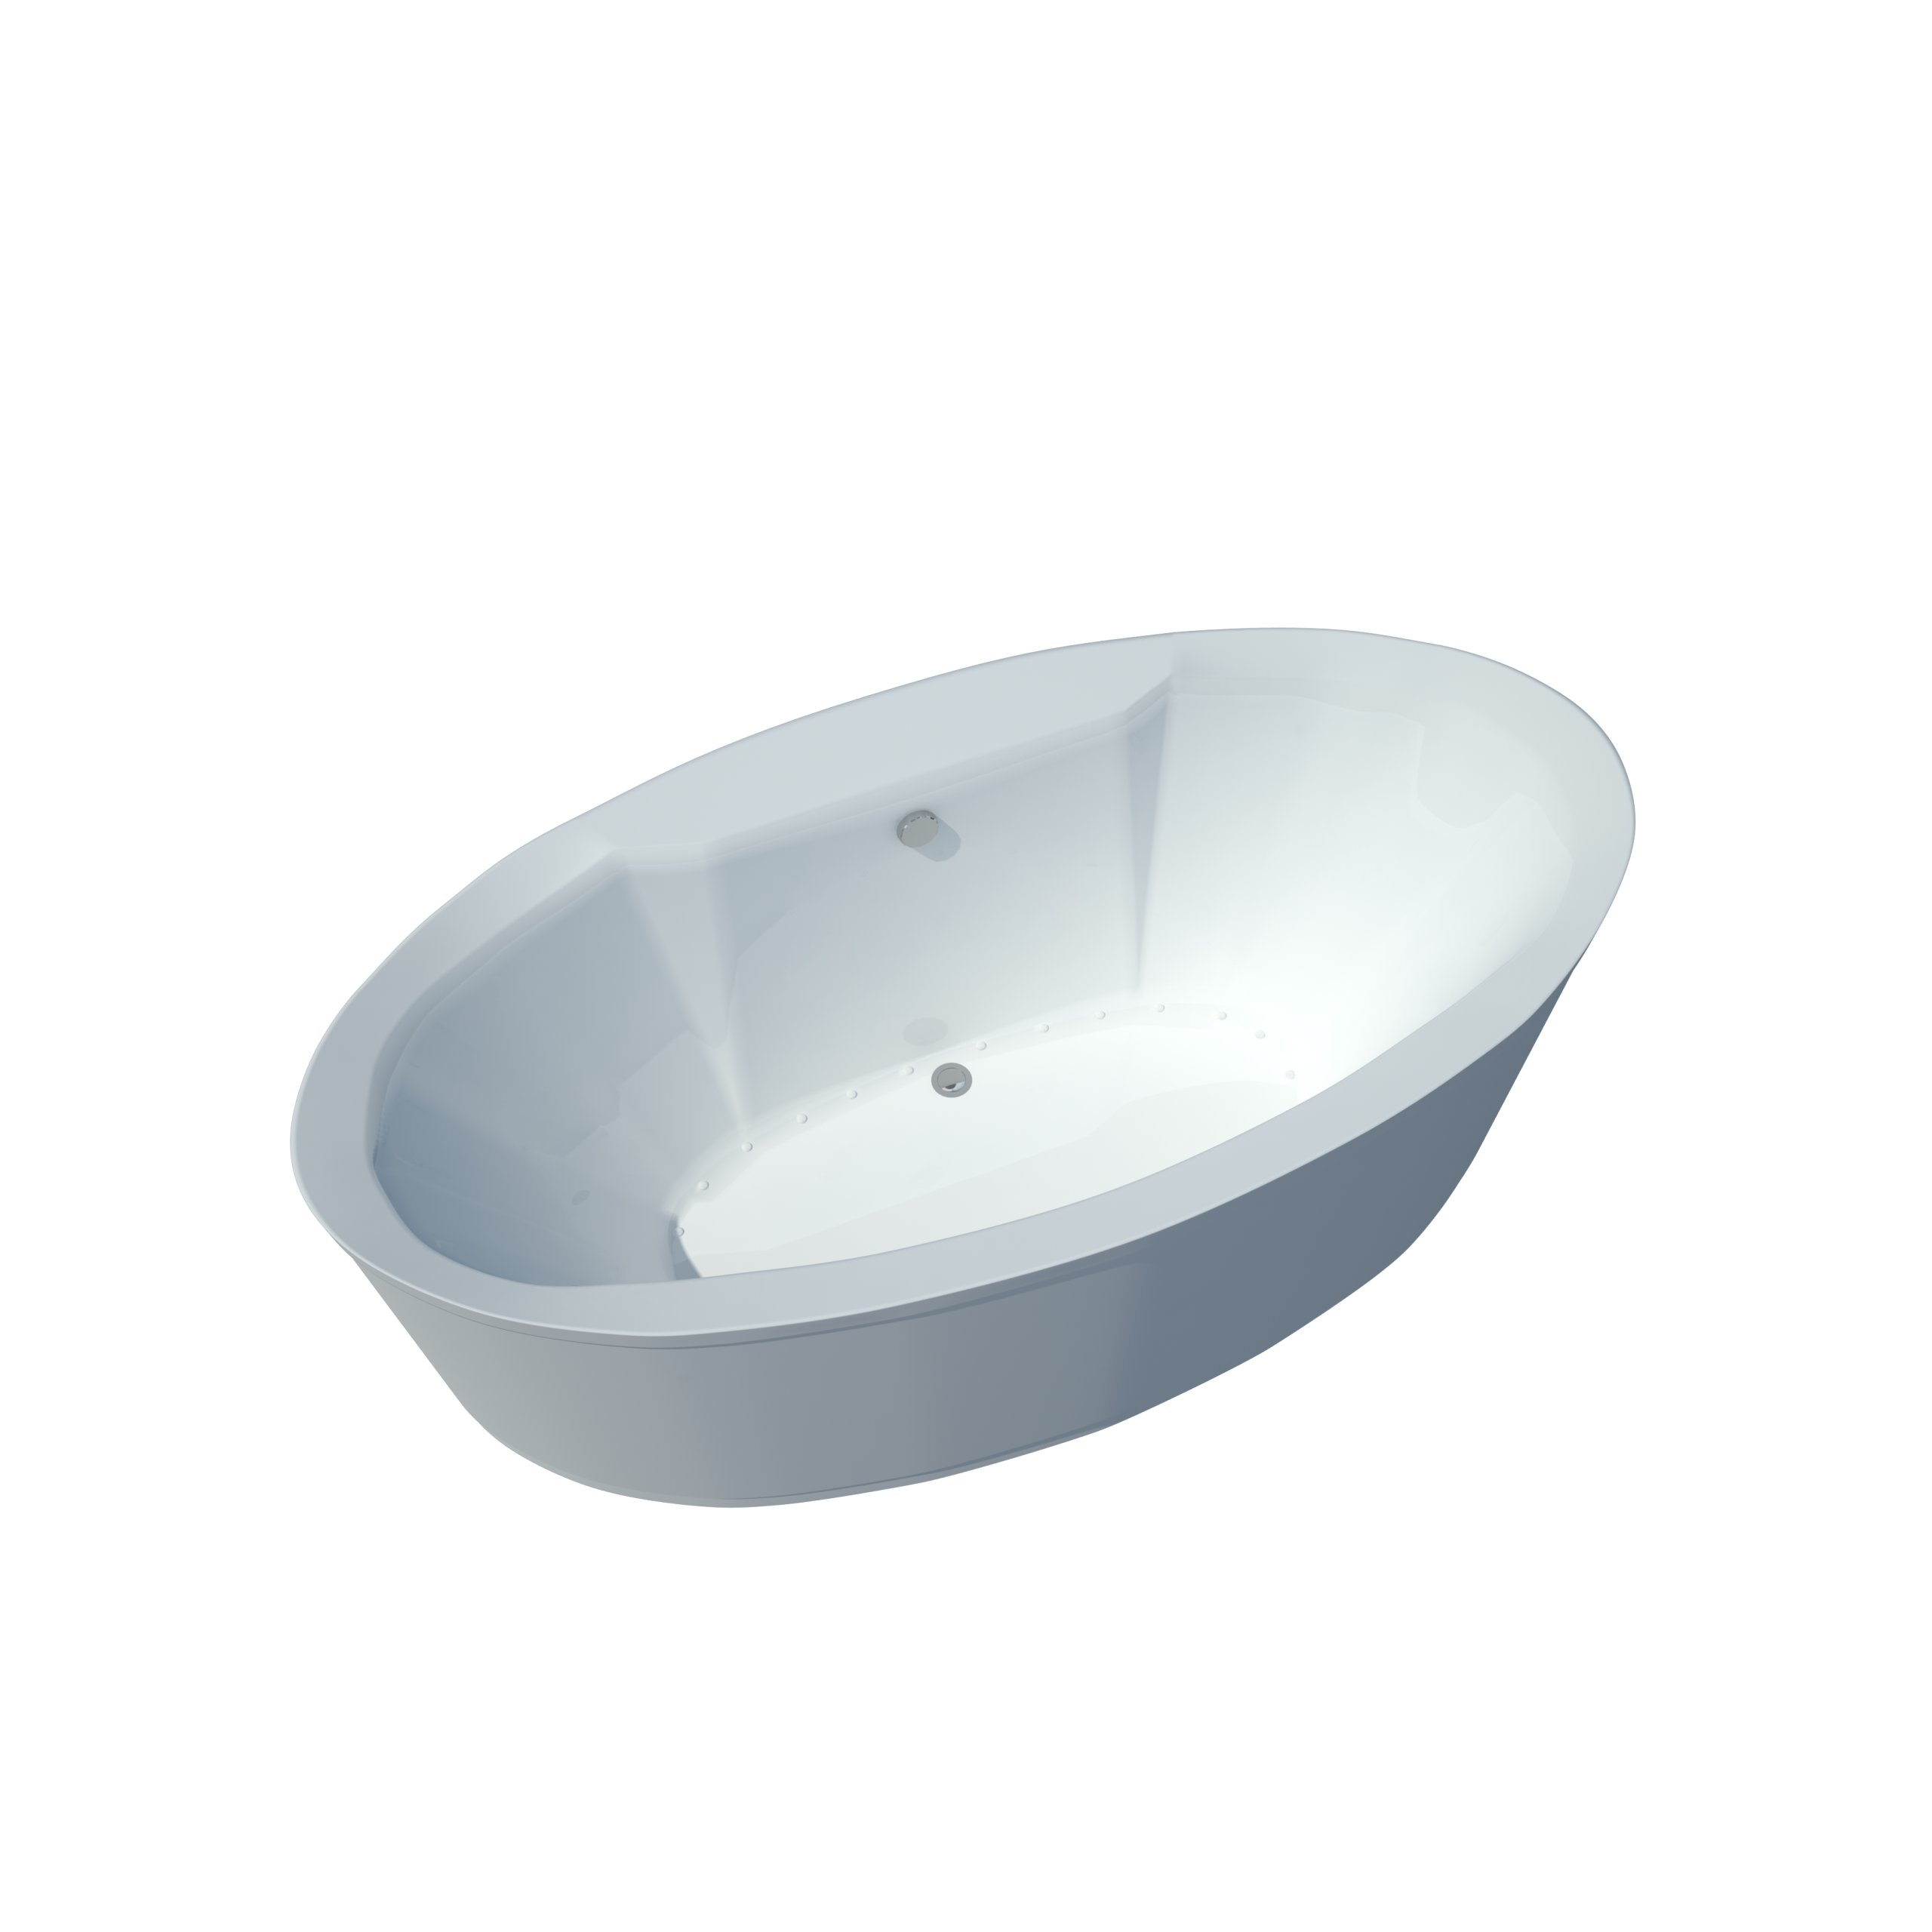 Atlantis Whirlpools 3468sa Suisse Oval Air Jetted Bathtub, 34 X 68, Center Drain, White